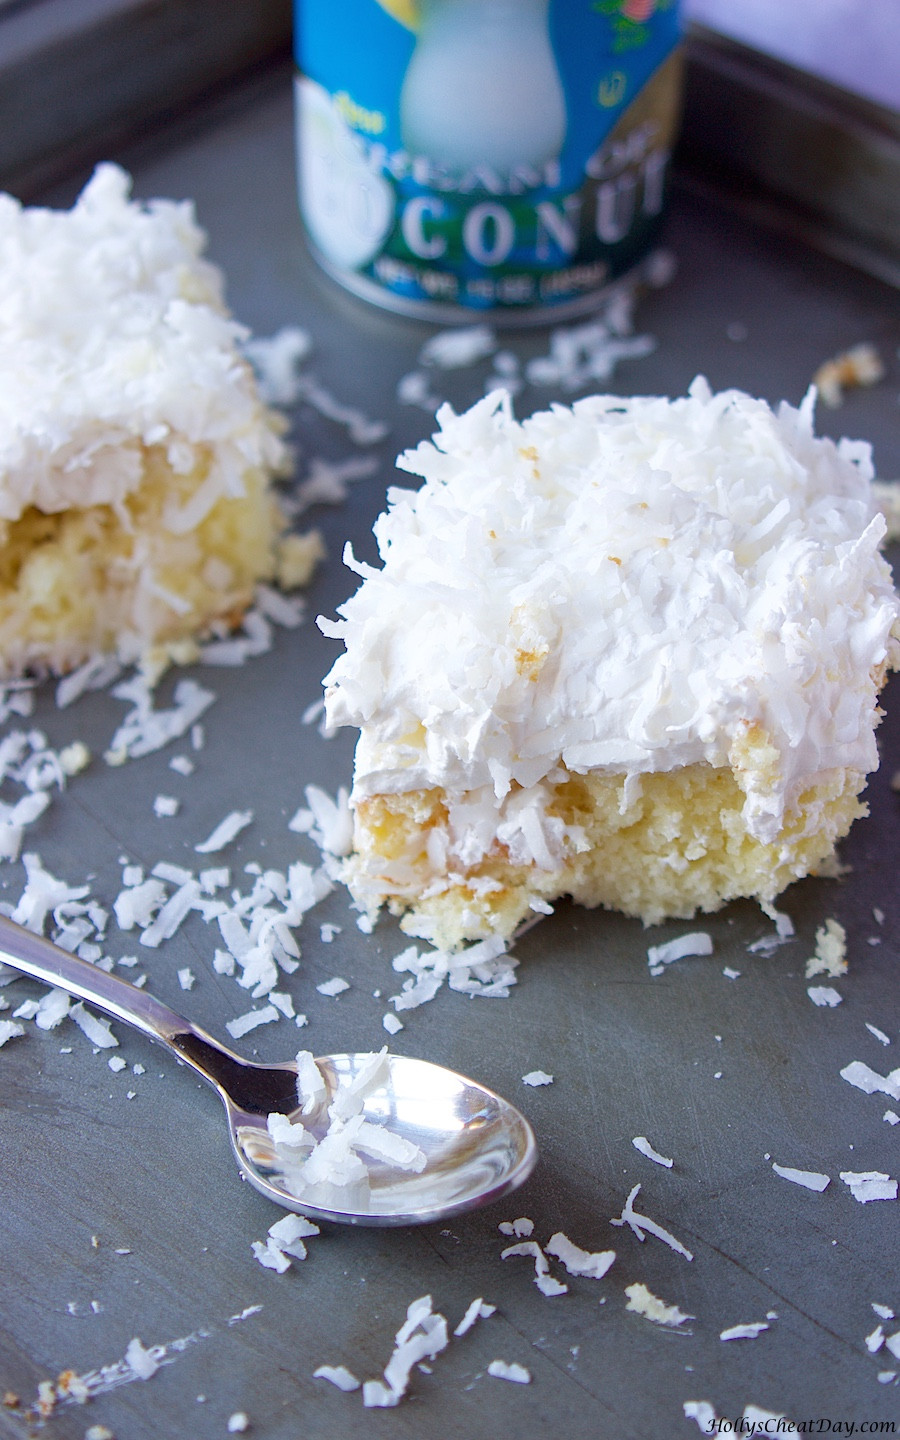 Easy Coconut Cake  Easy Coconut Cake HOLLY S CHEAT DAY